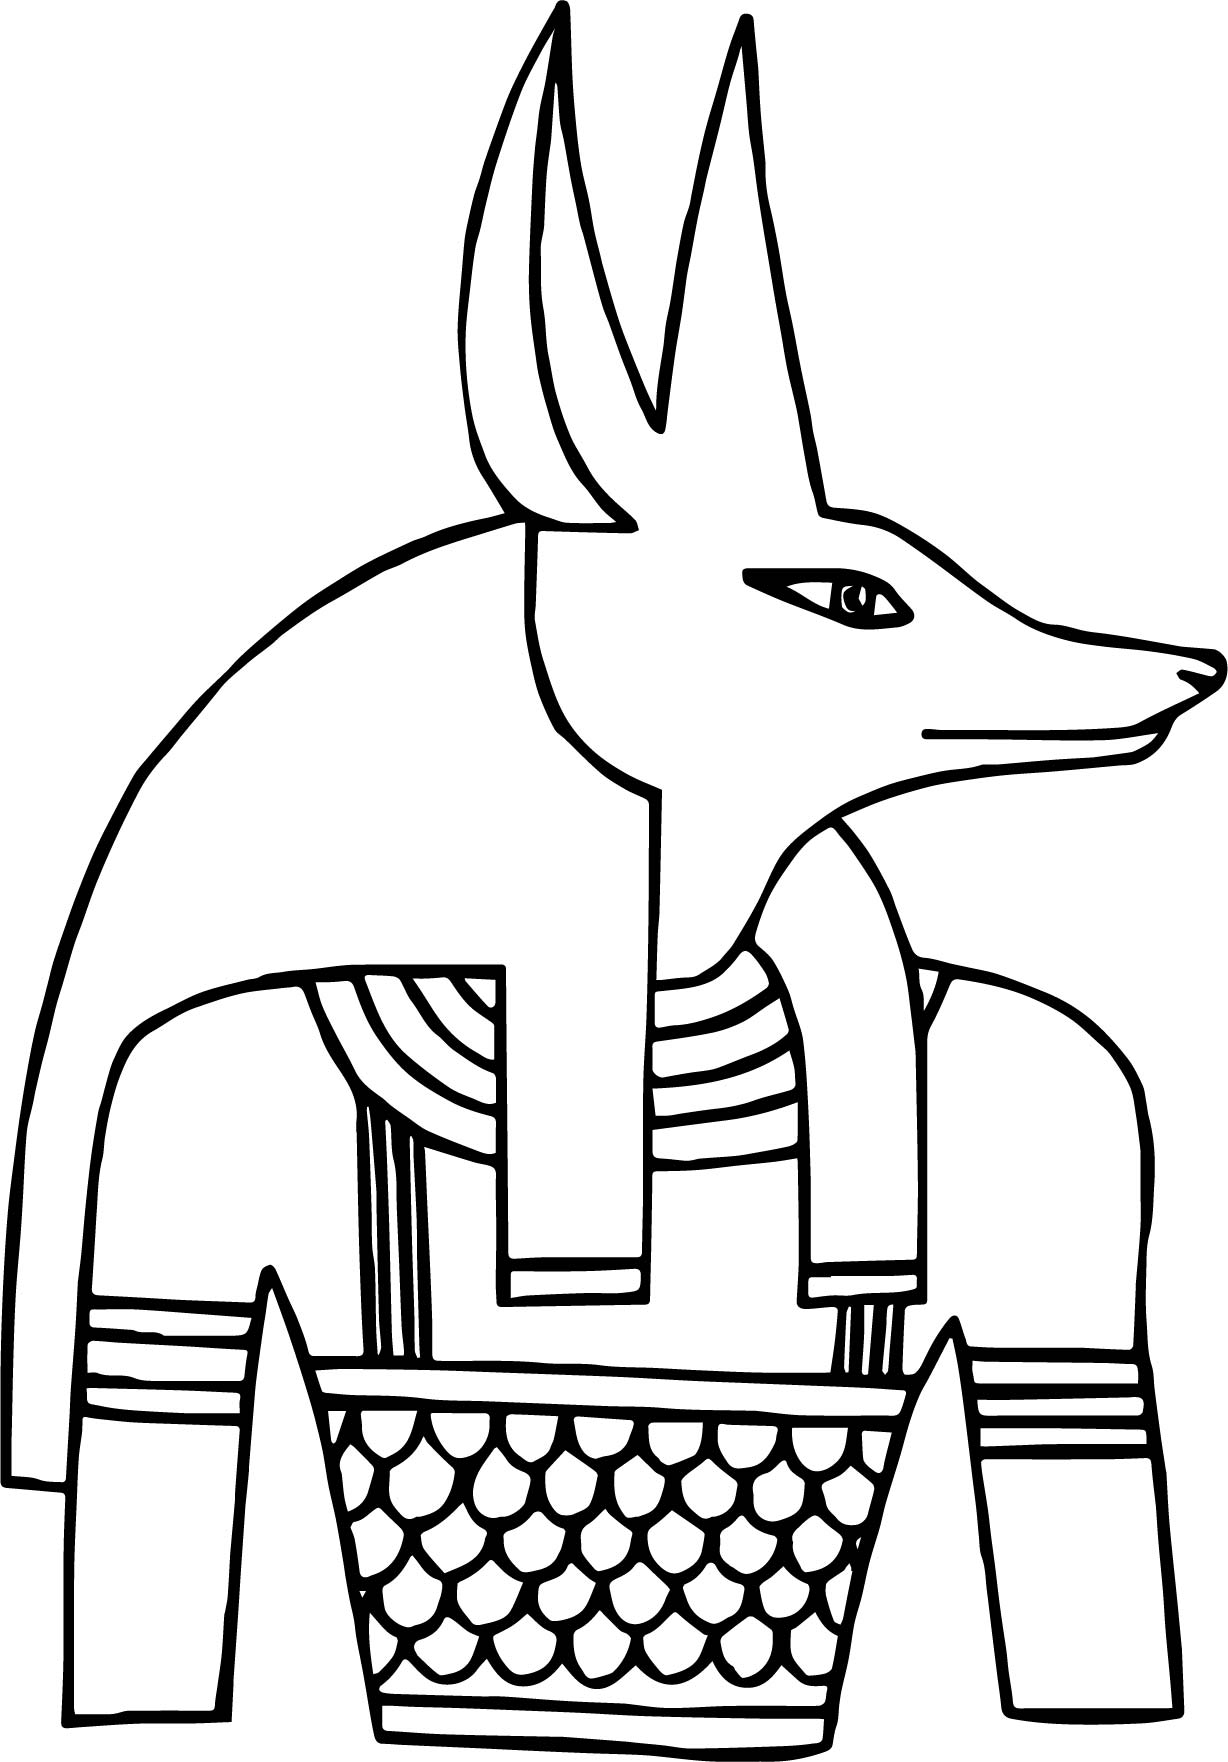 Egyptian Deity Coloring Pages